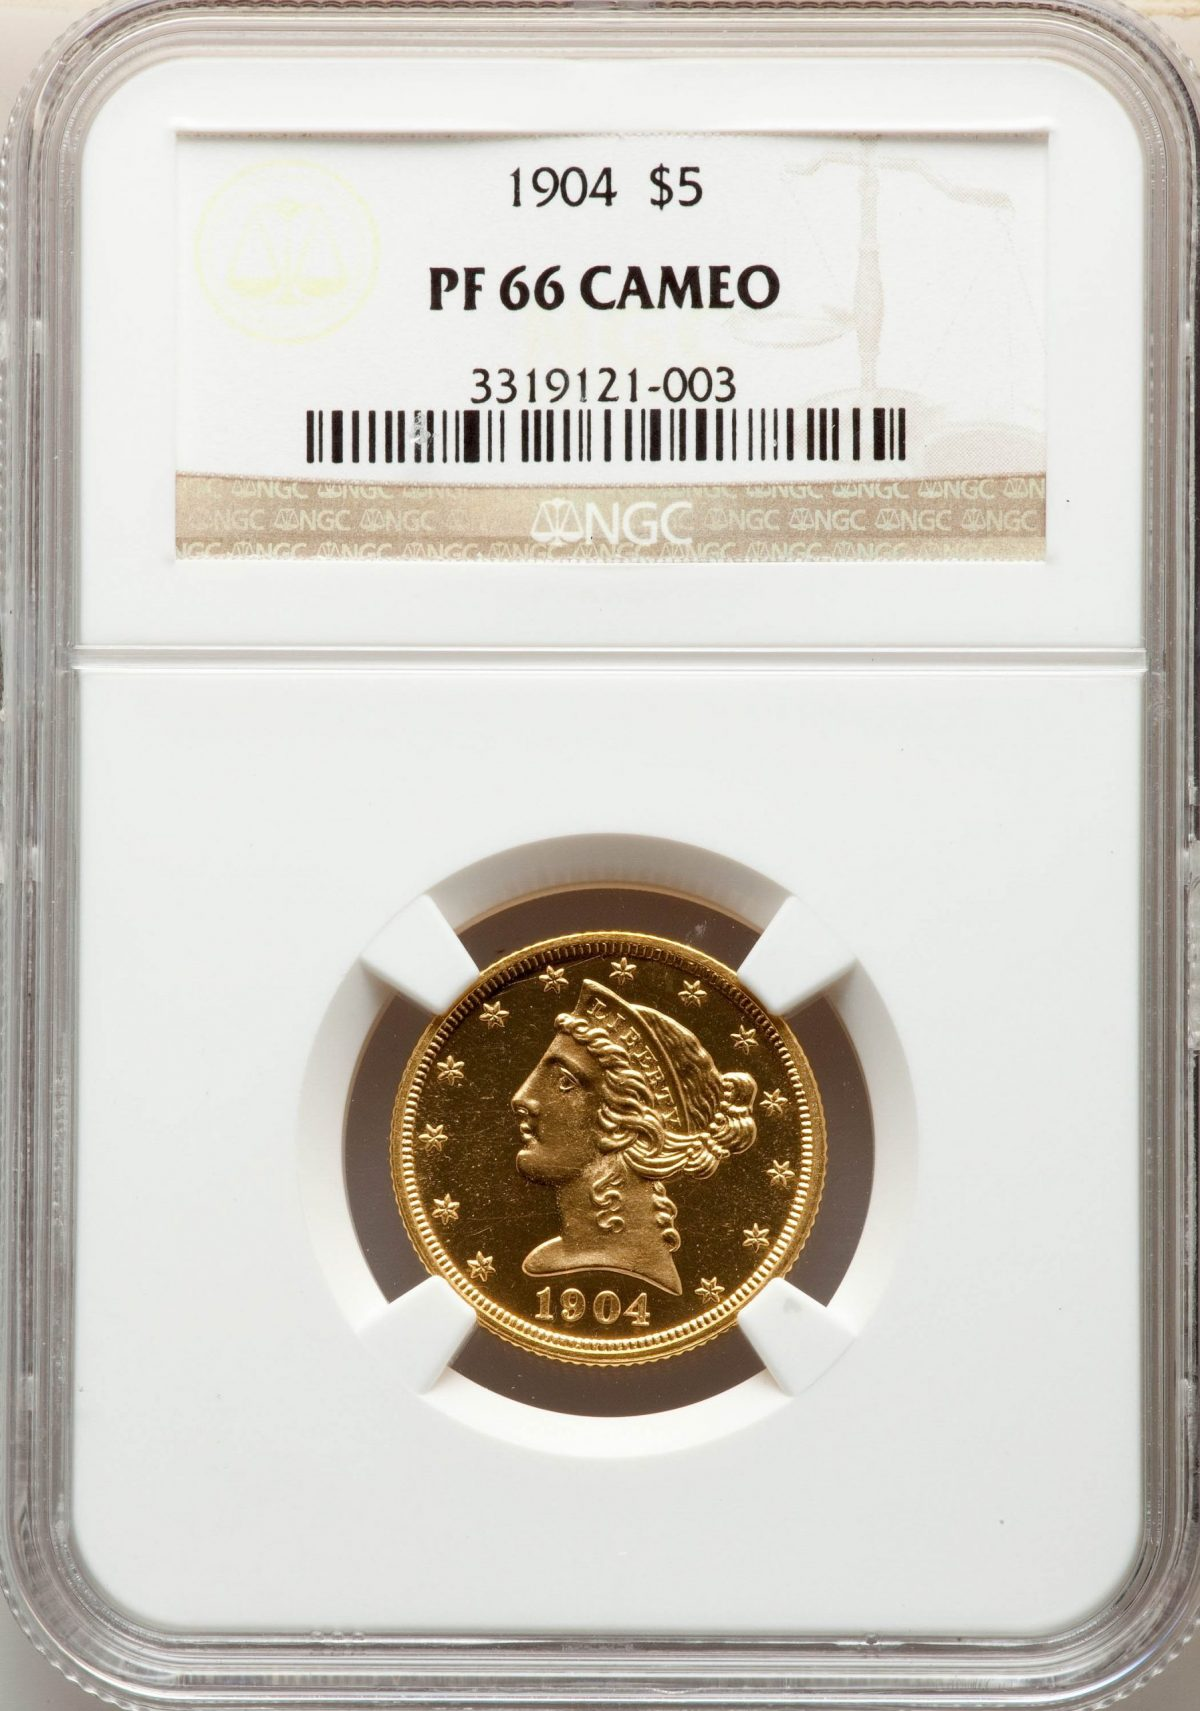 1904 $5 Proof Cameo